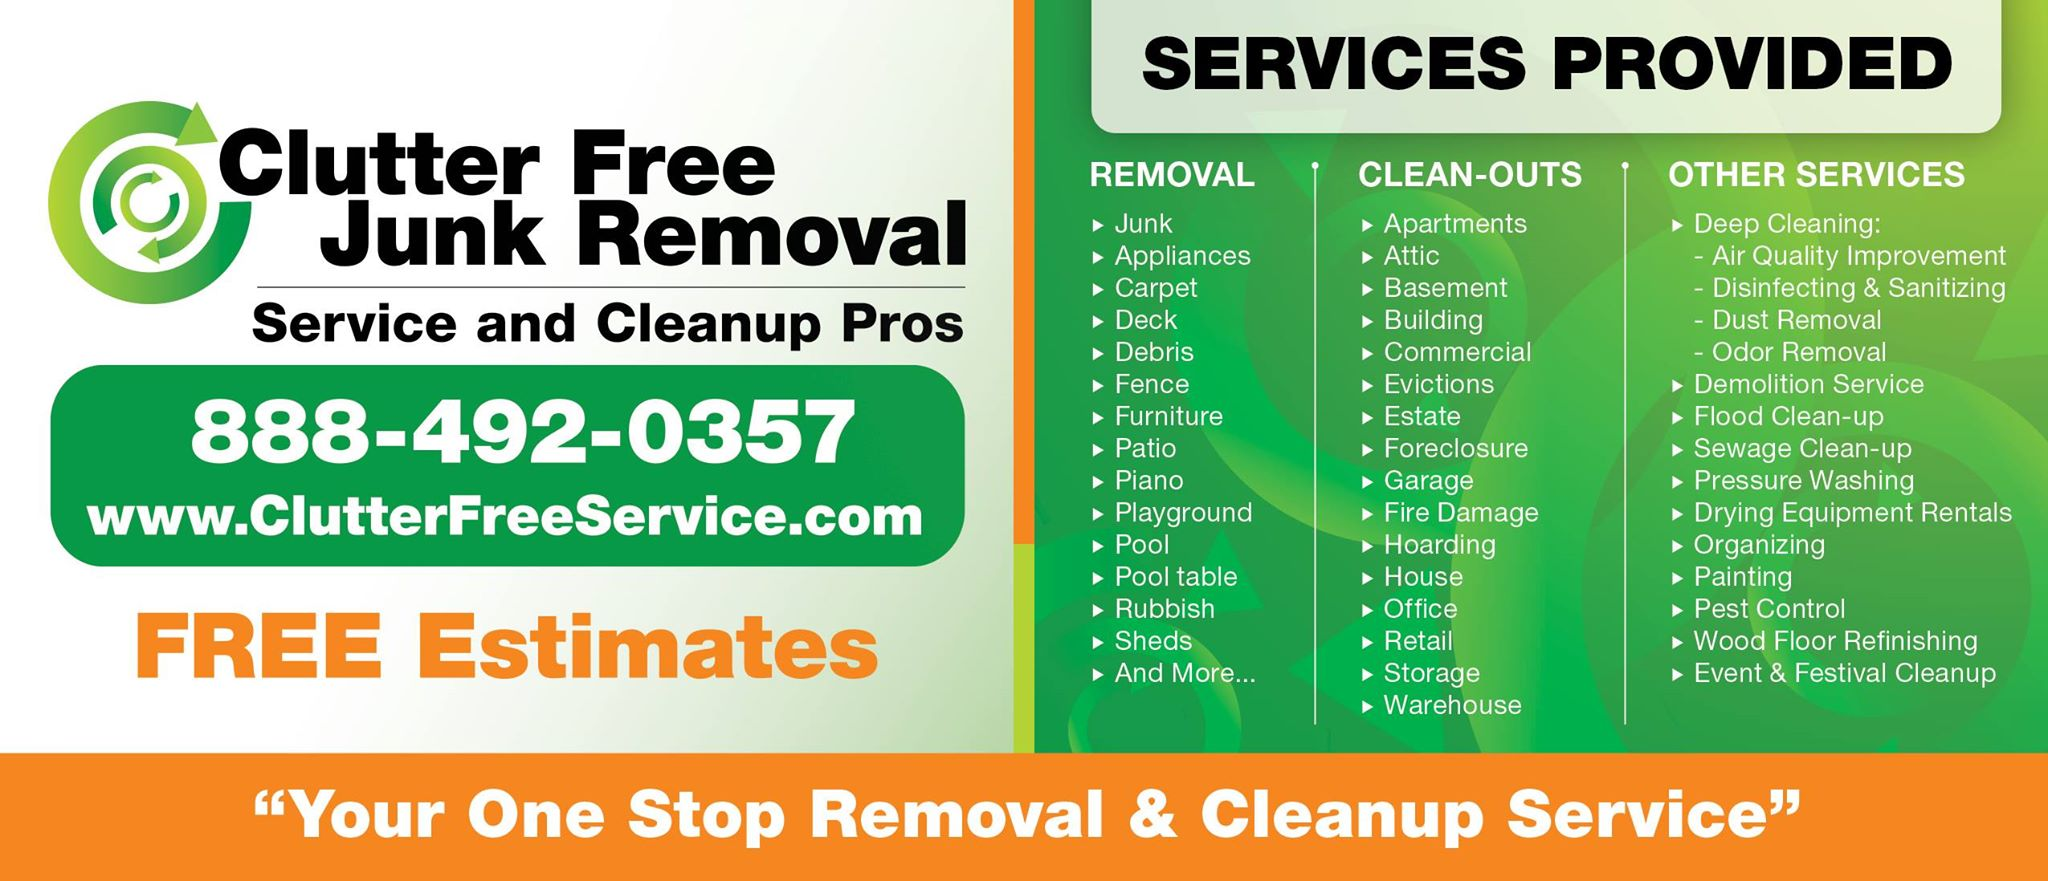 Free Junk Removal >> Clutter Free Junk Removal Service Cleanup Pros Reviews Damage